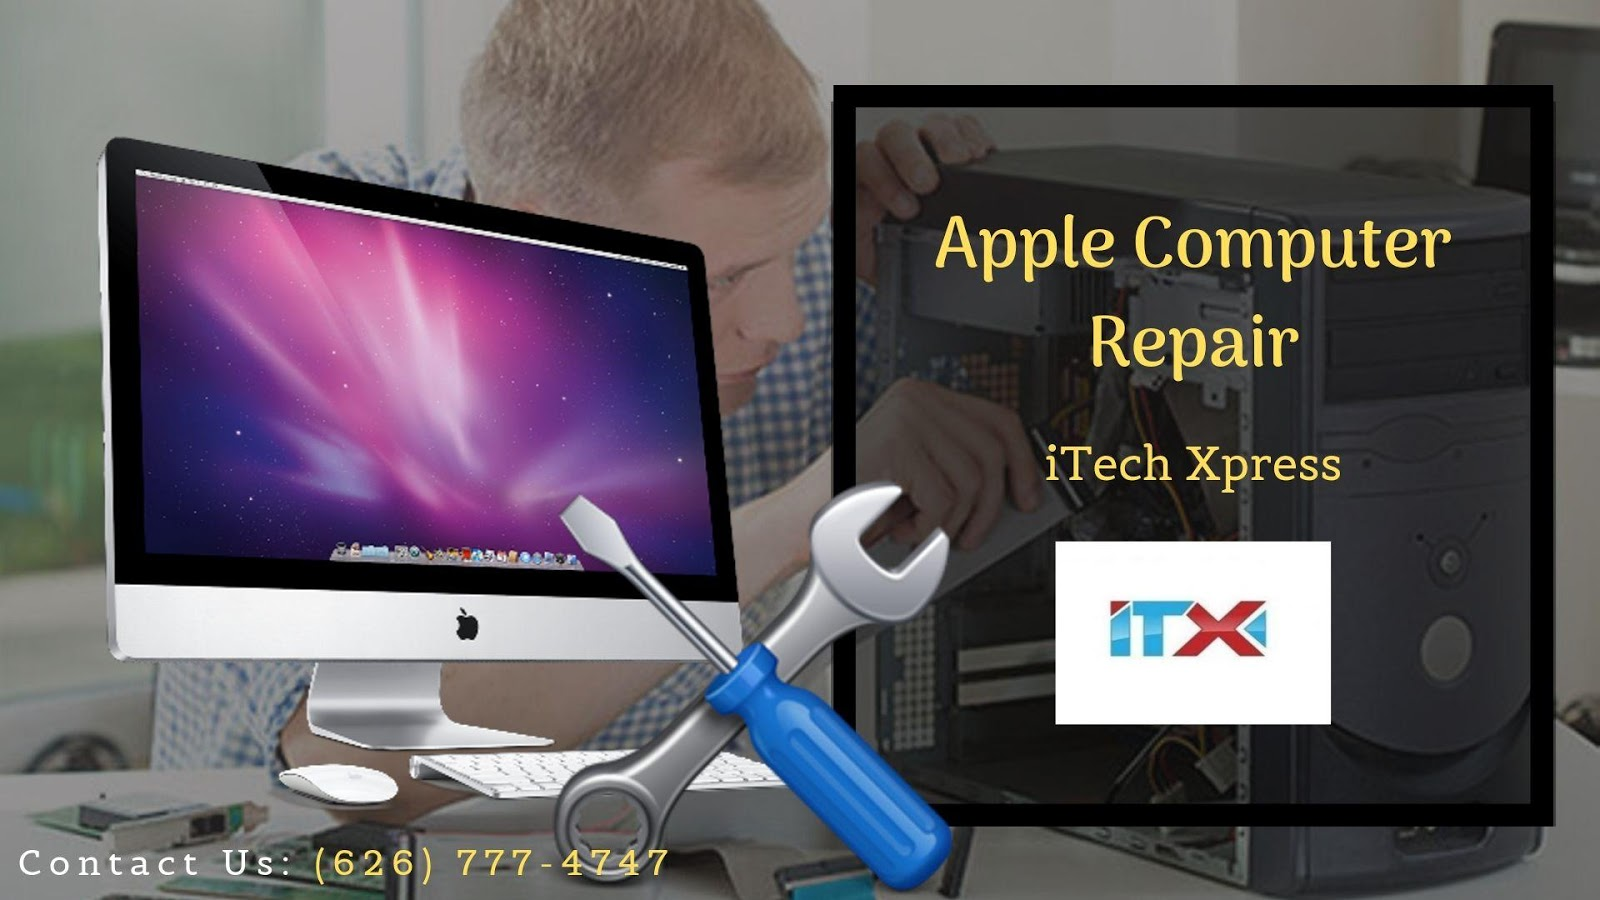 Apple Computer Repair